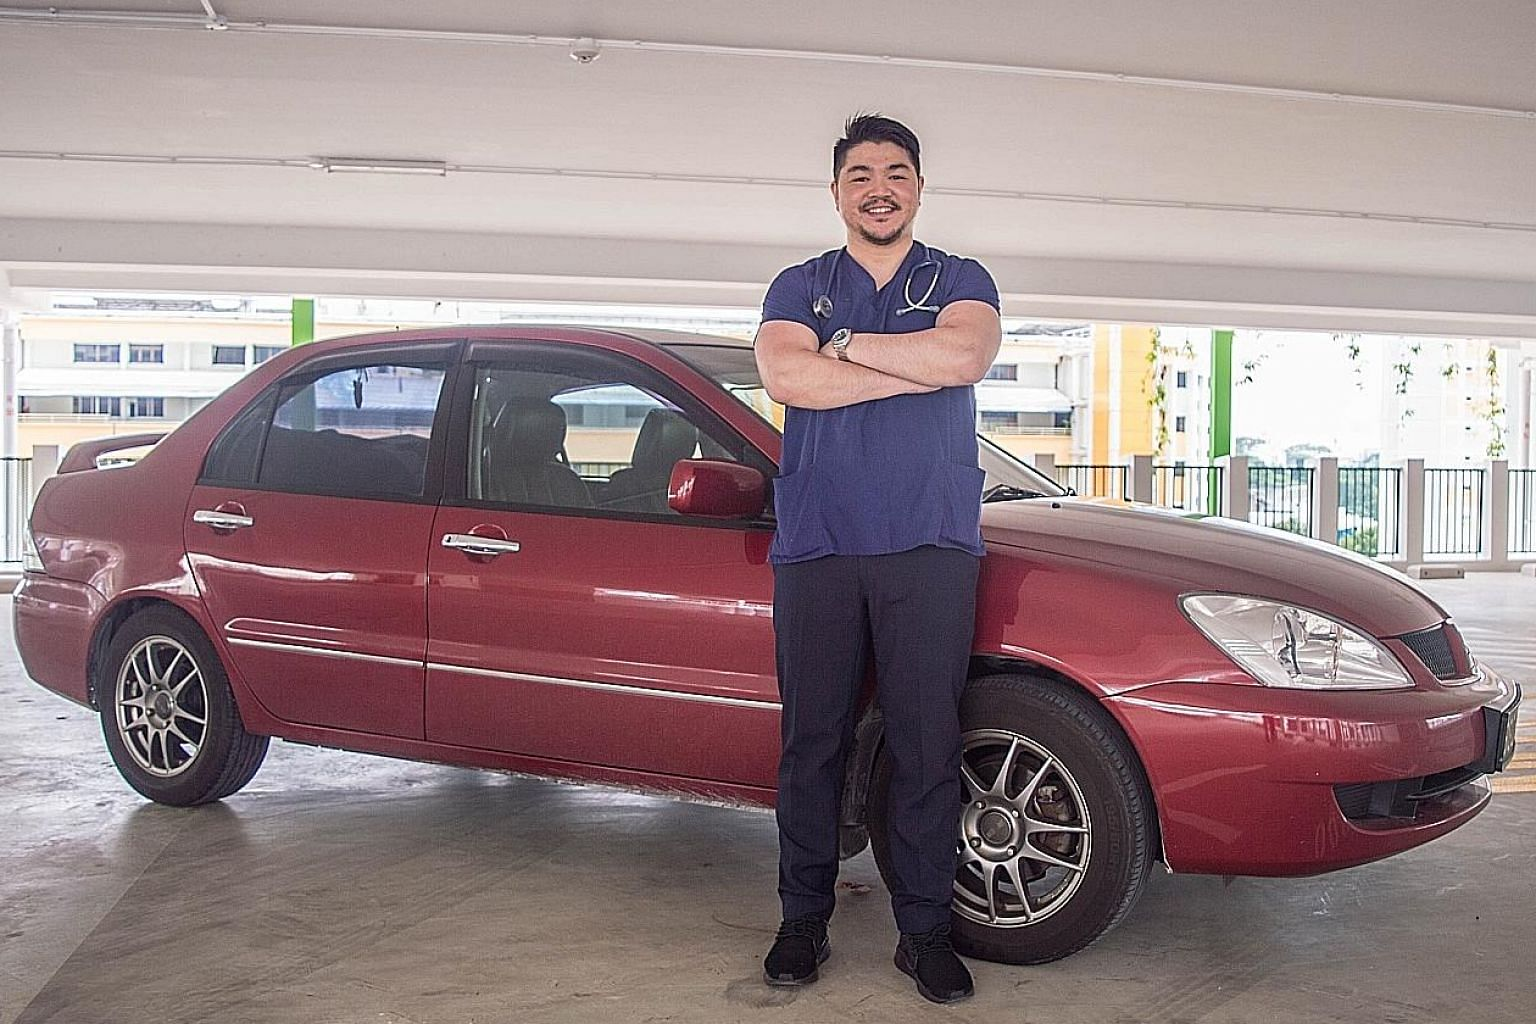 In 2013, Dr Jipson Quah bought the Mitsubishi Lancer for $36,000 and, in 2016, renewed its certificate of entitlement for five years for $24,000.